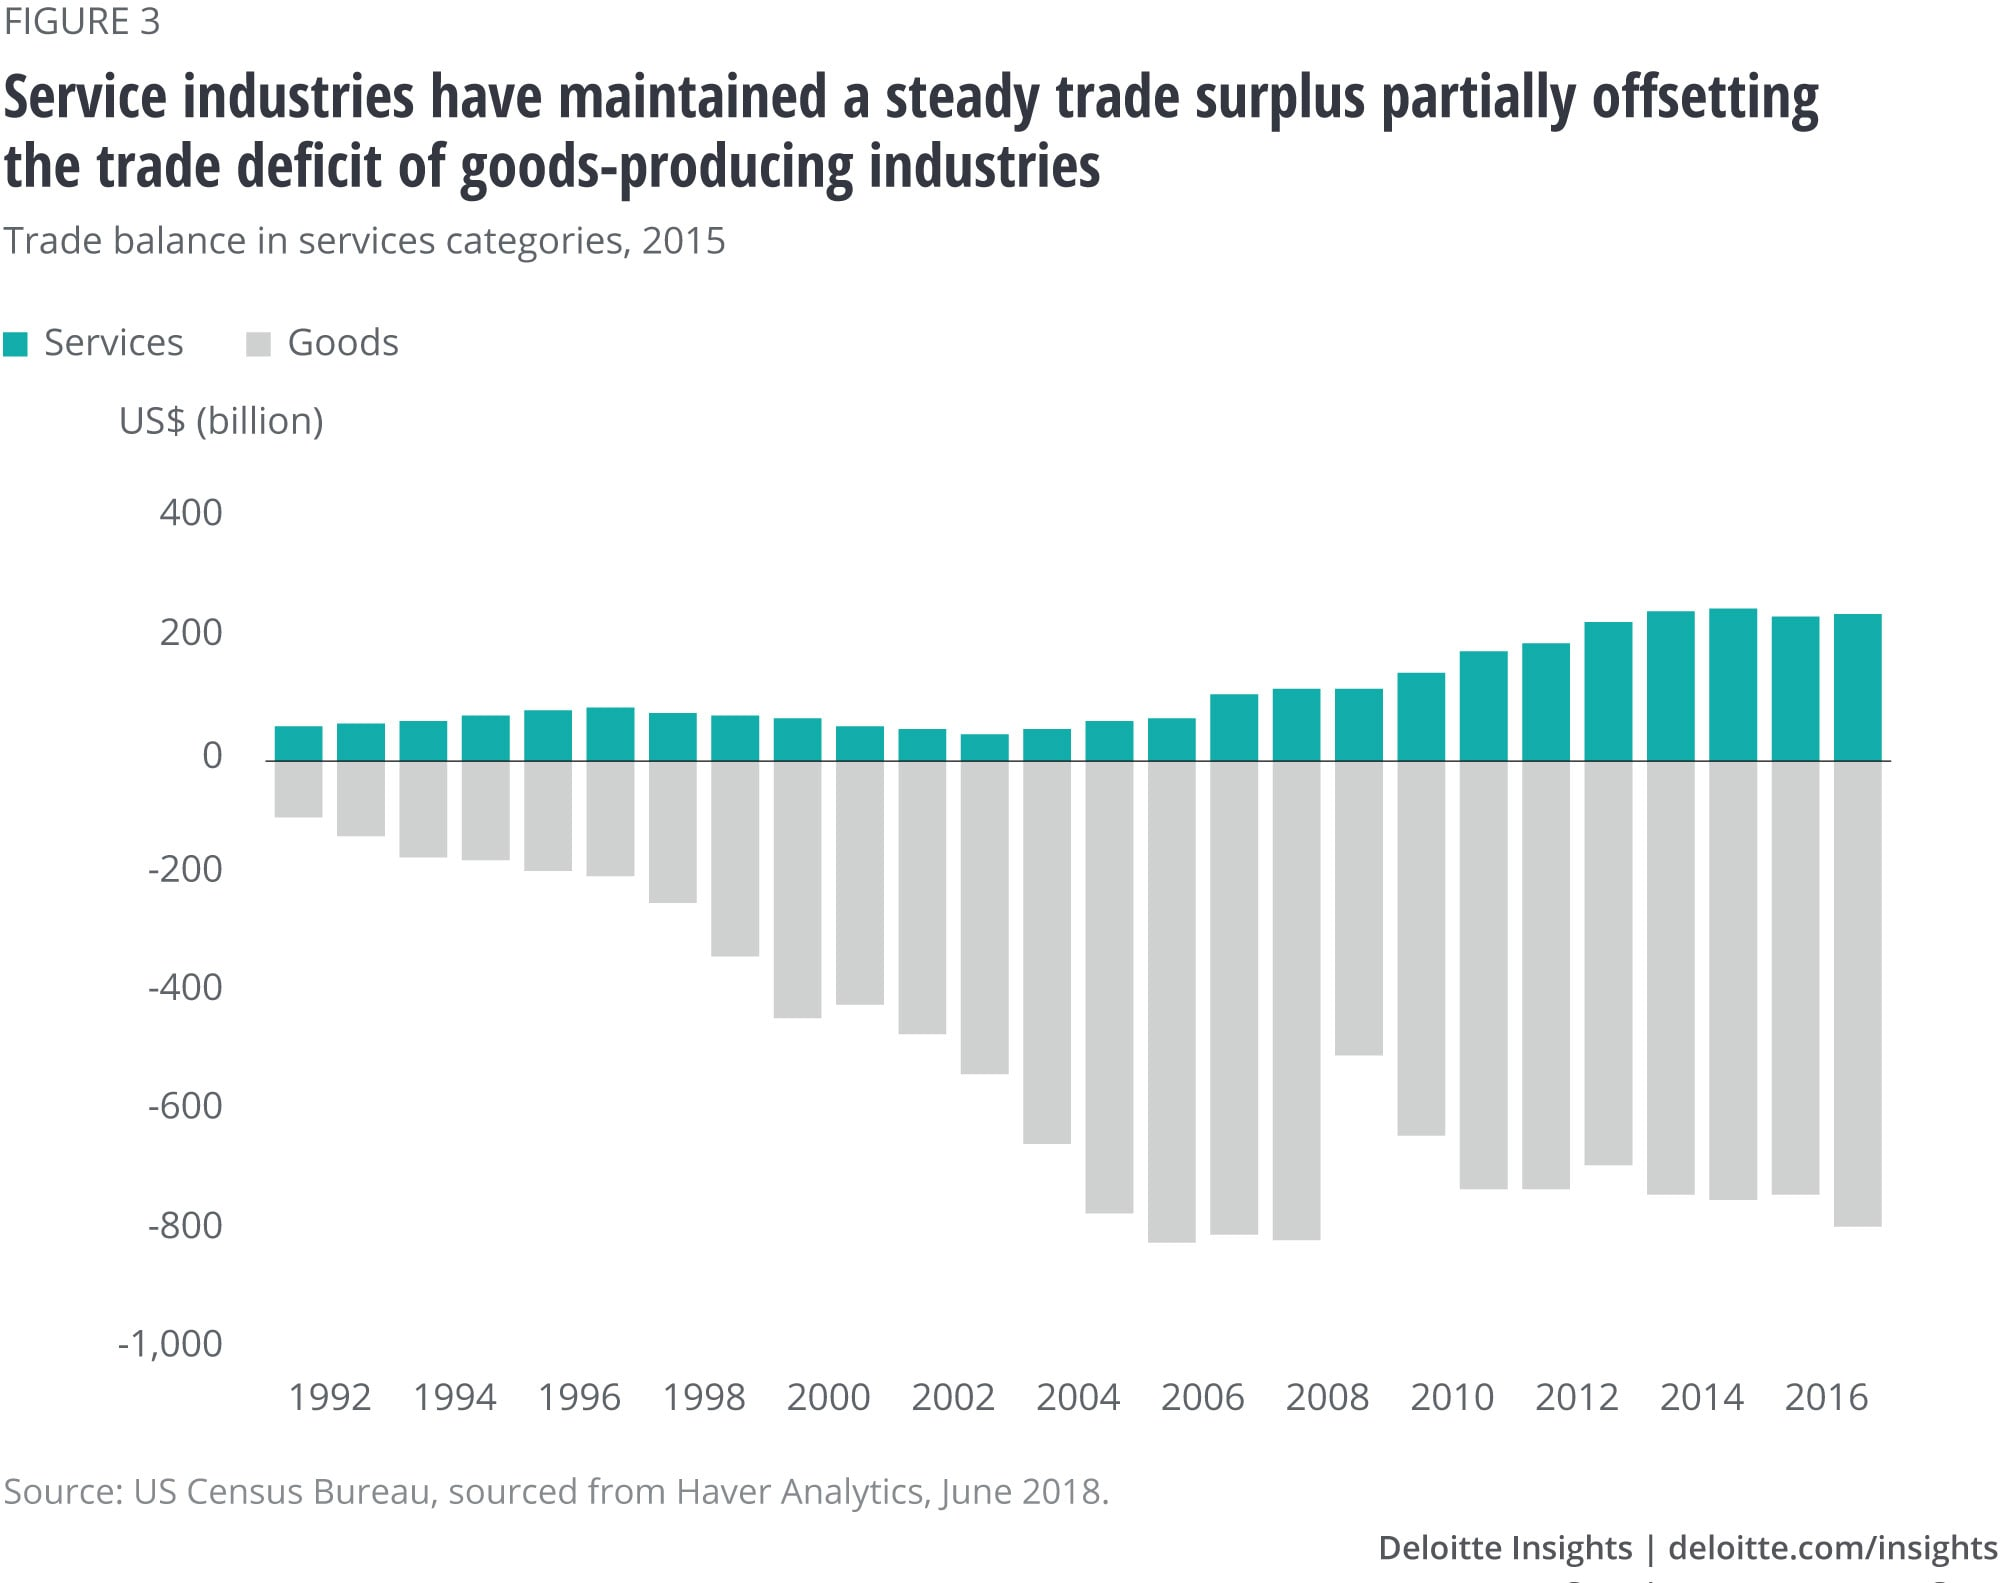 Service industries have maintained a steady trade surplus partially offsetting the trade deficit of goods-producing industries